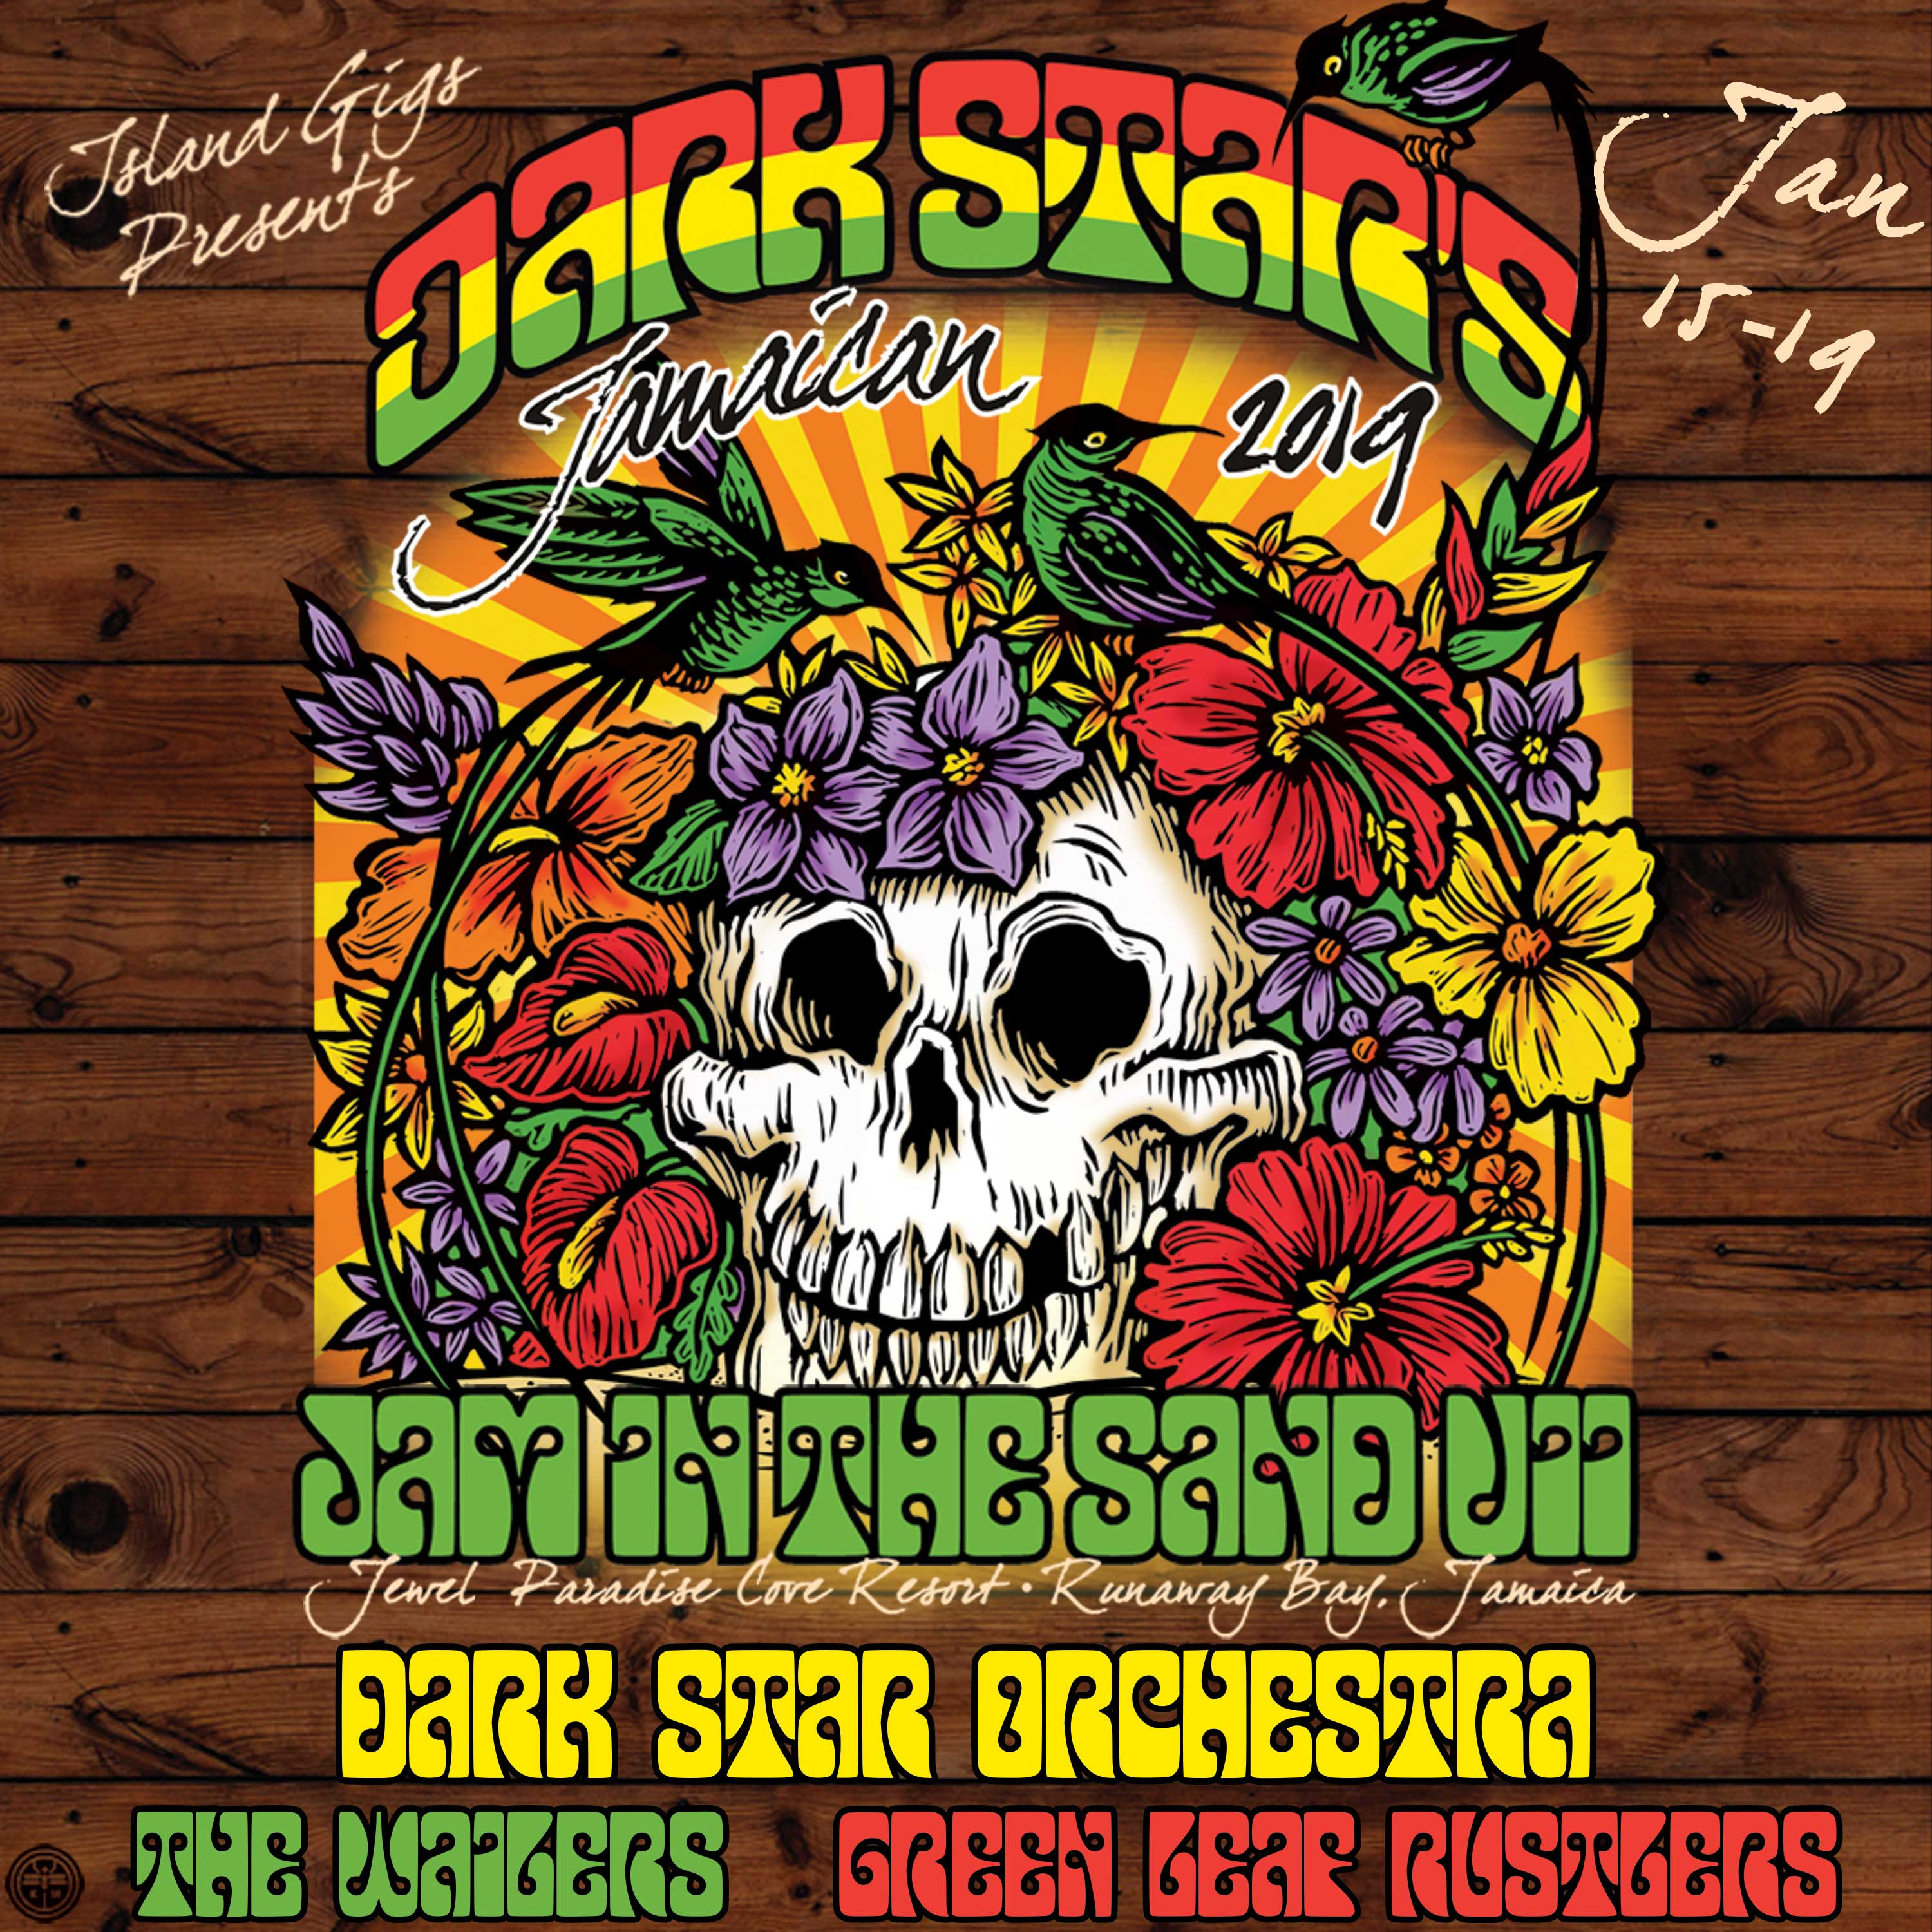 Dark Star Orchestra Announces 7th Annual Jamaican Jam in the Sand